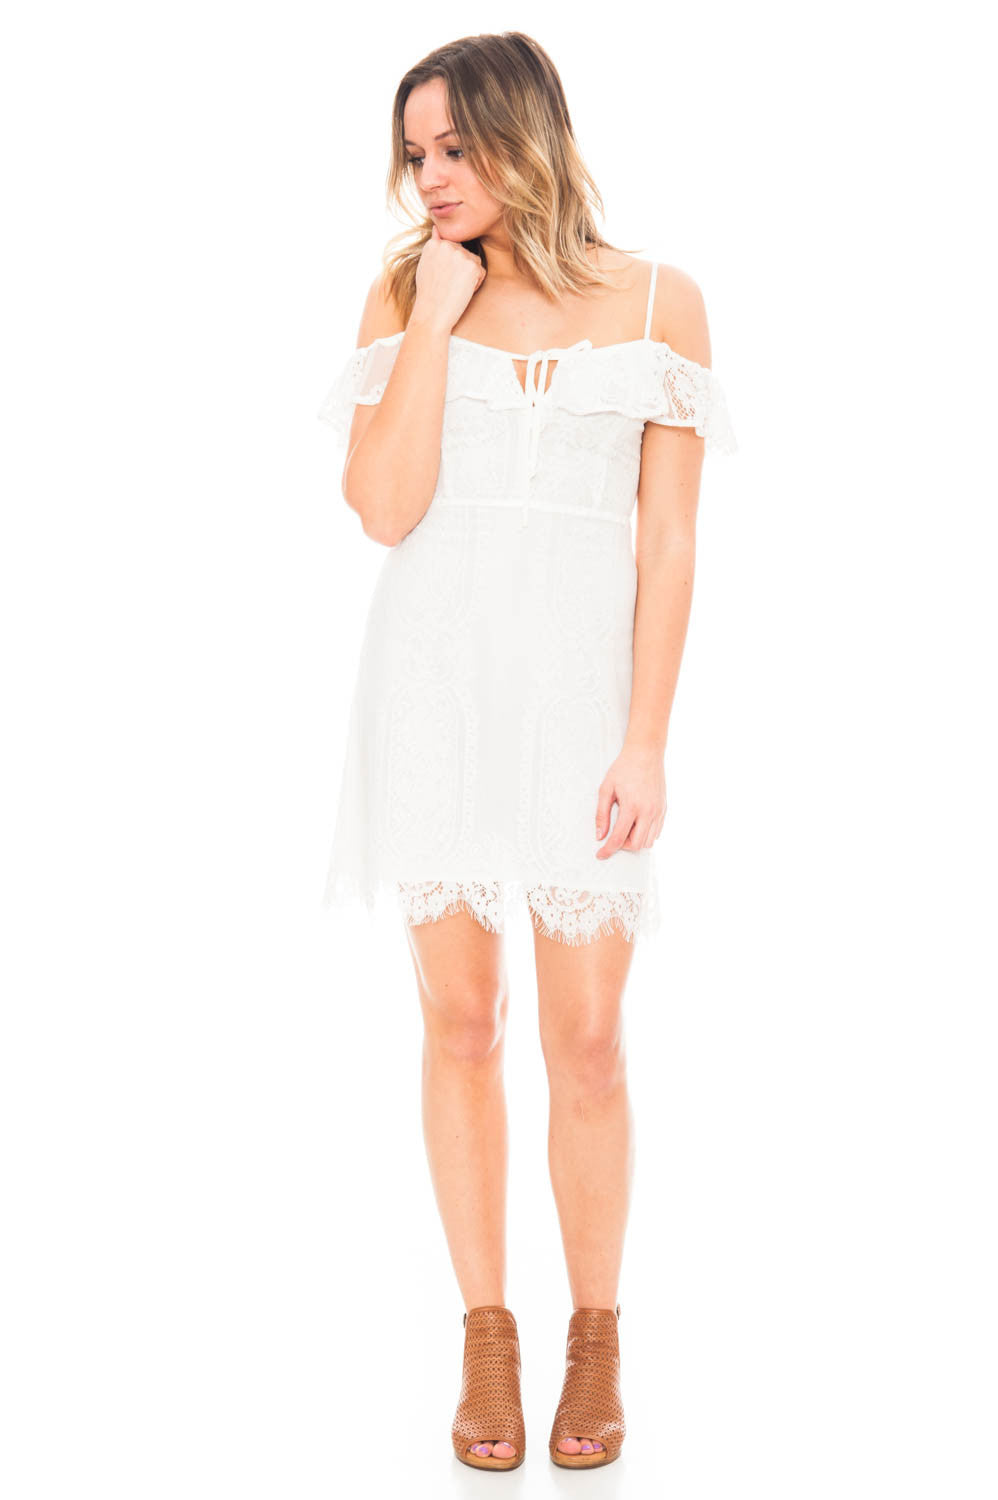 Dress - Lace Overlay Cold Shoulder Dress by Lush